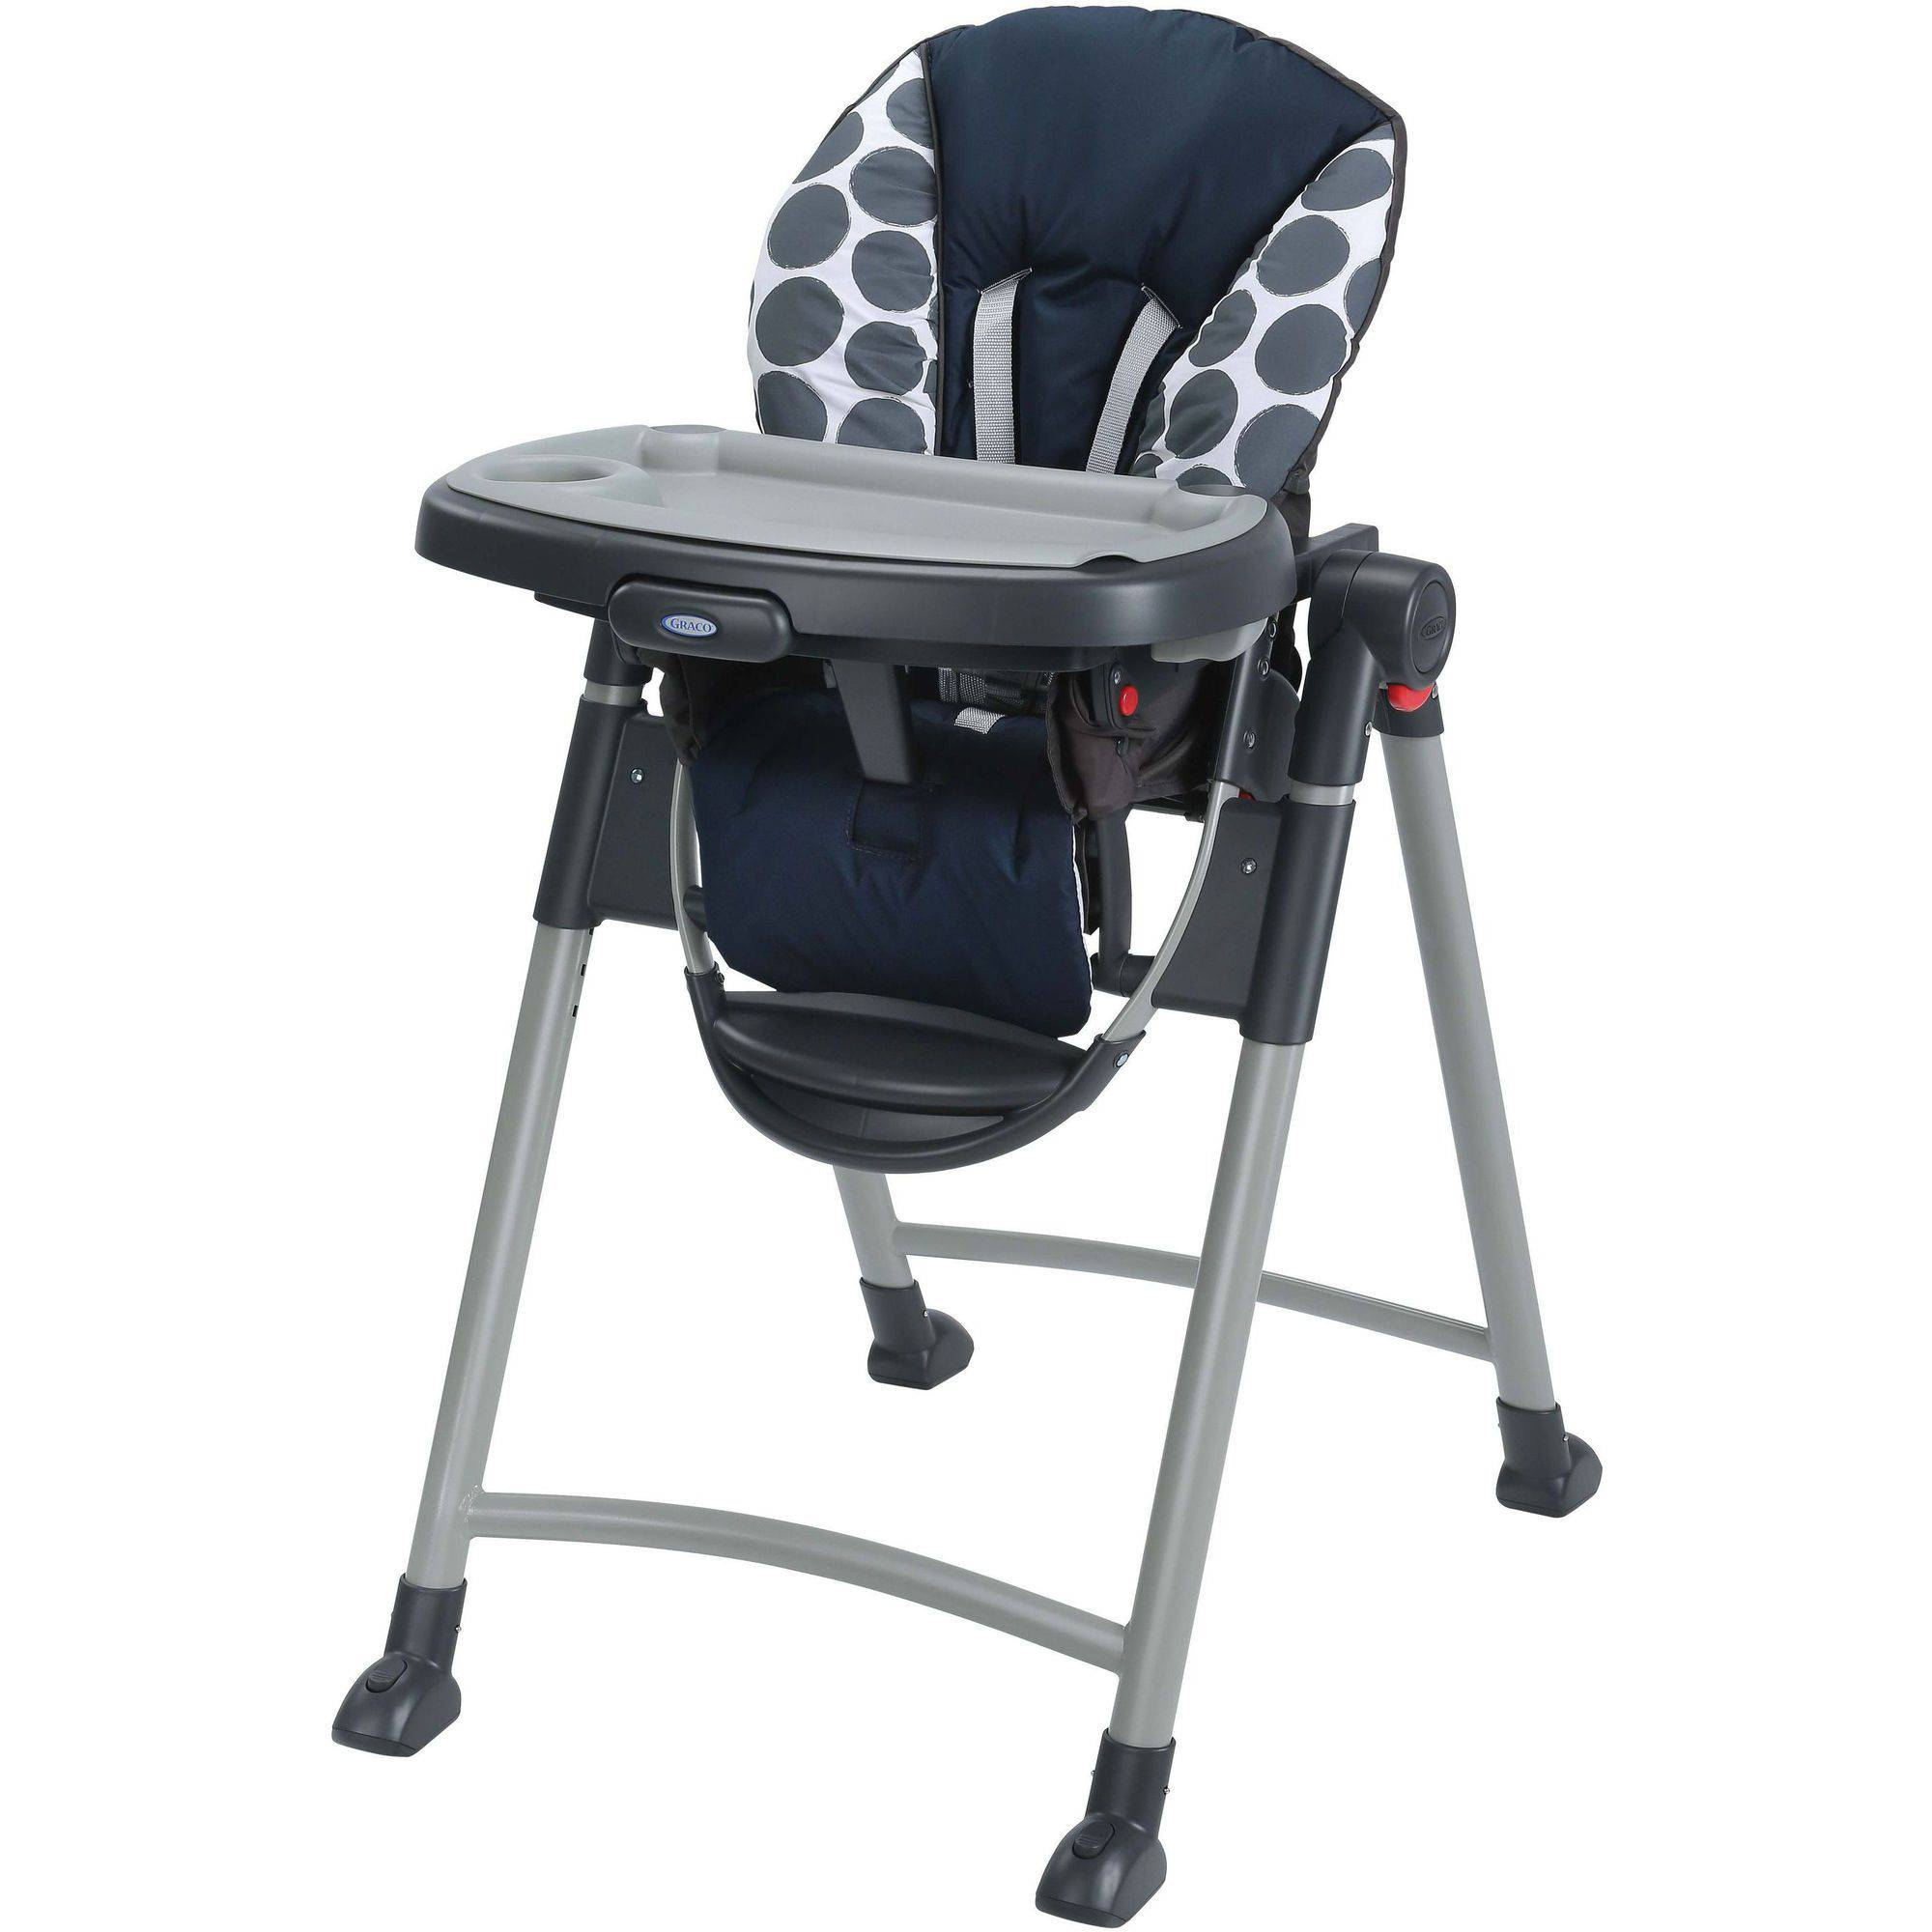 Graco Contempo High Chair - Walmart.com